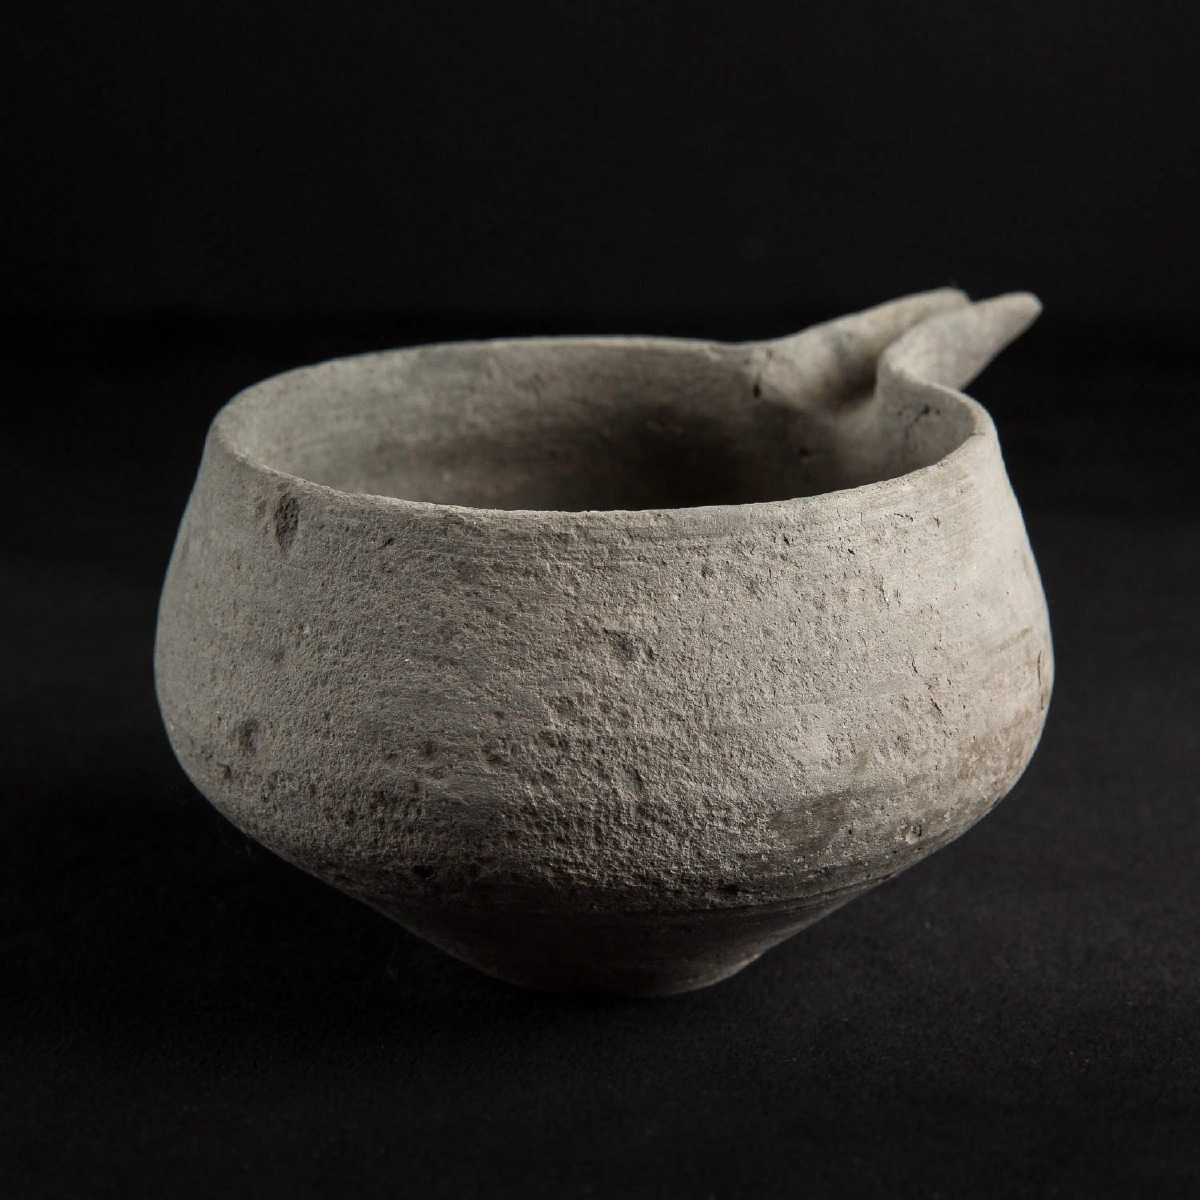 Photo of bowl-spout-bactria-archeology-galerie-golconda